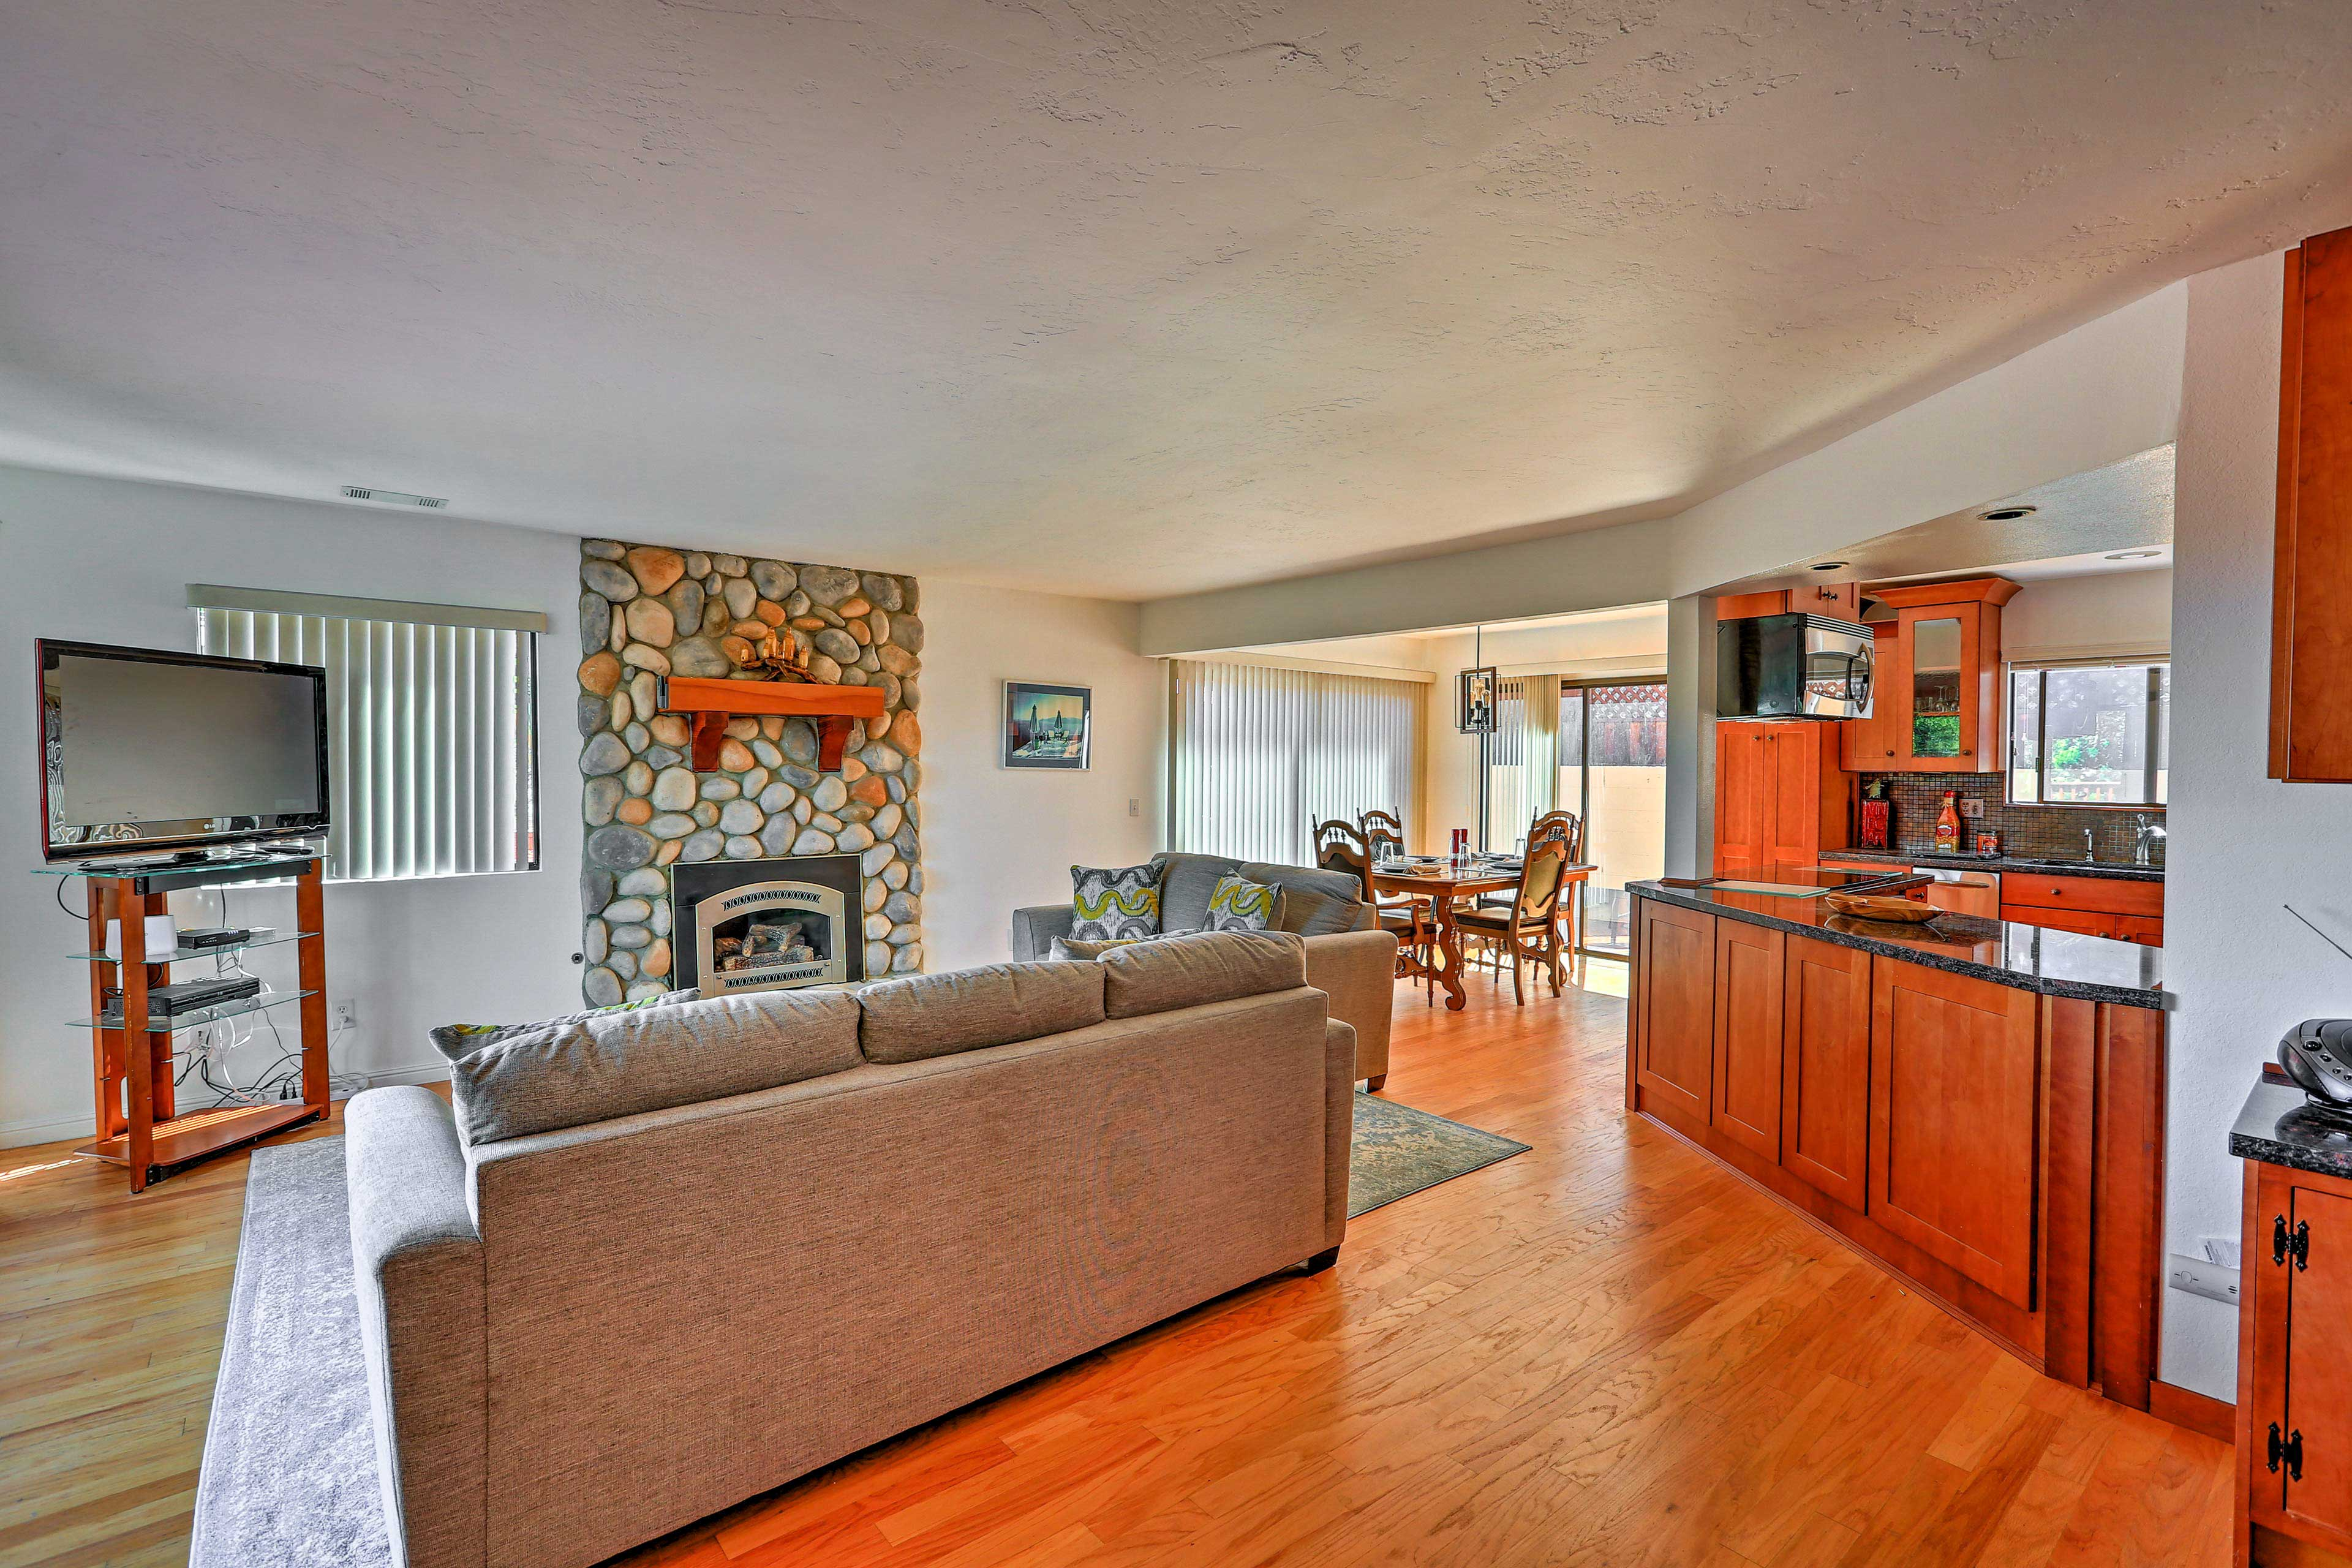 The whole group can sprawl out in this open-concept floor plan.